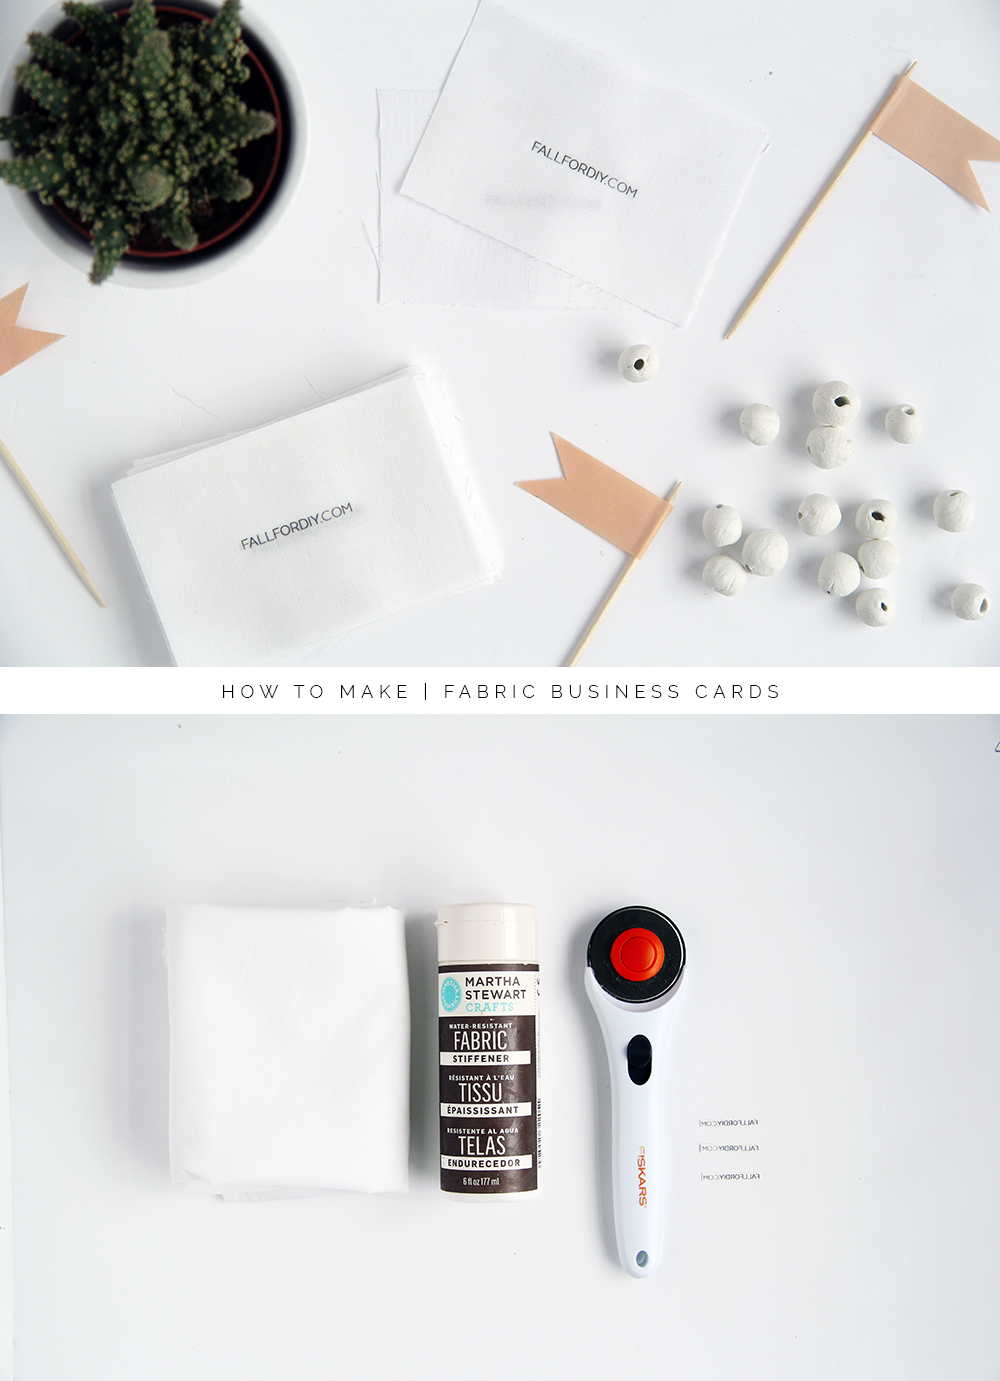 How to make fabric business cards fall for diy materials white cotton fabric colourmoves